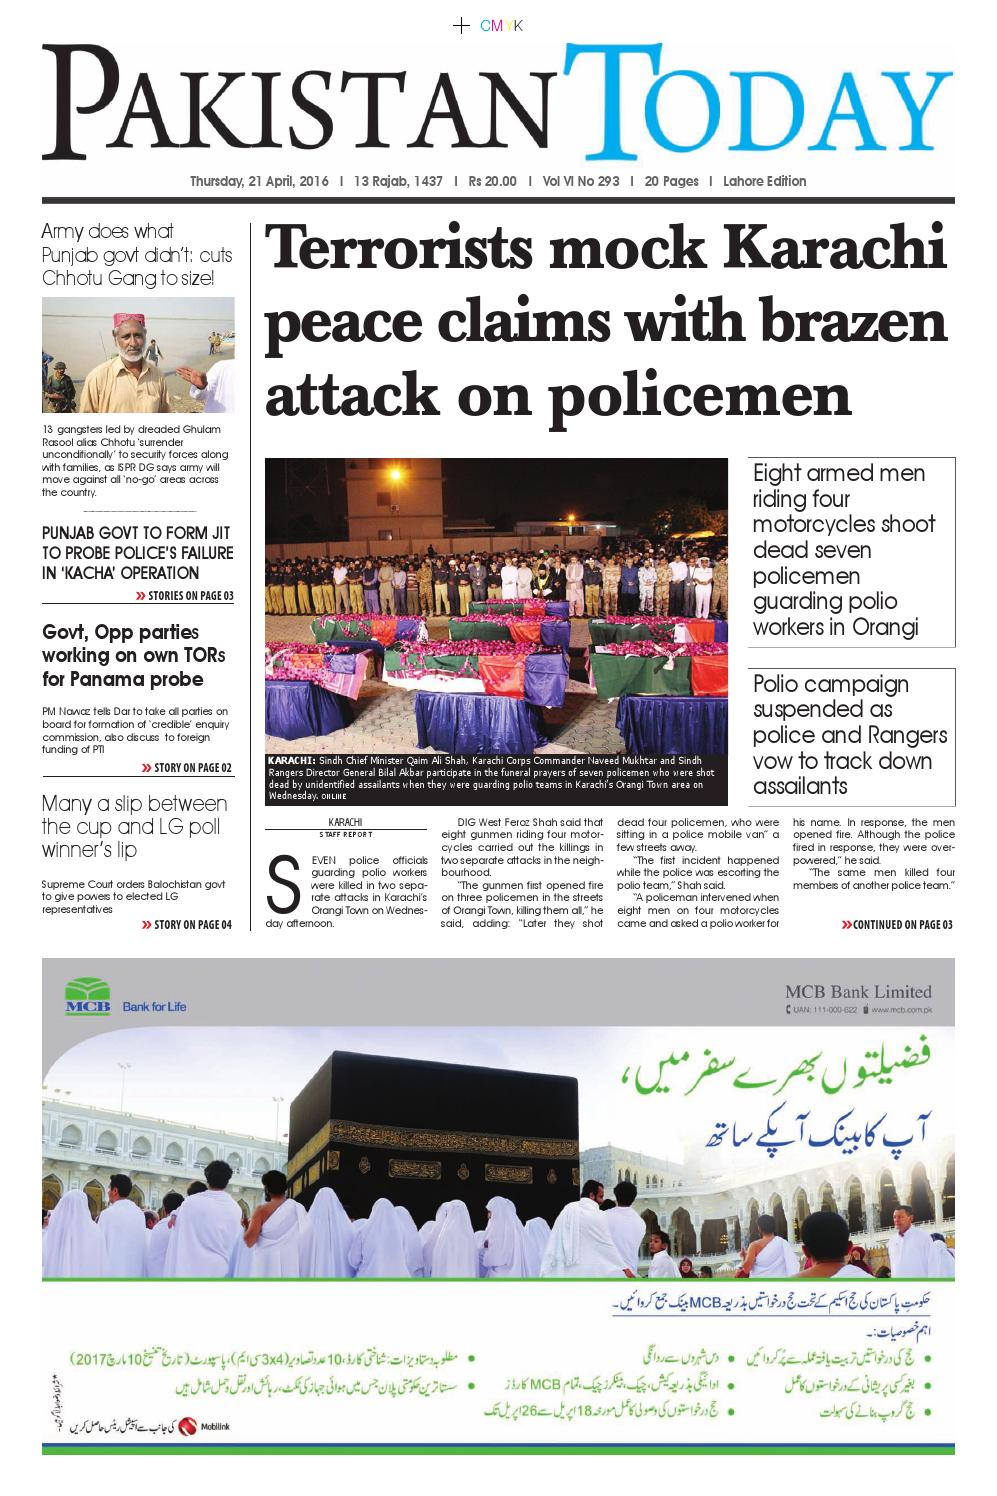 E paper pdf (21 4 2016) lhr by Pakistan Today - issuu